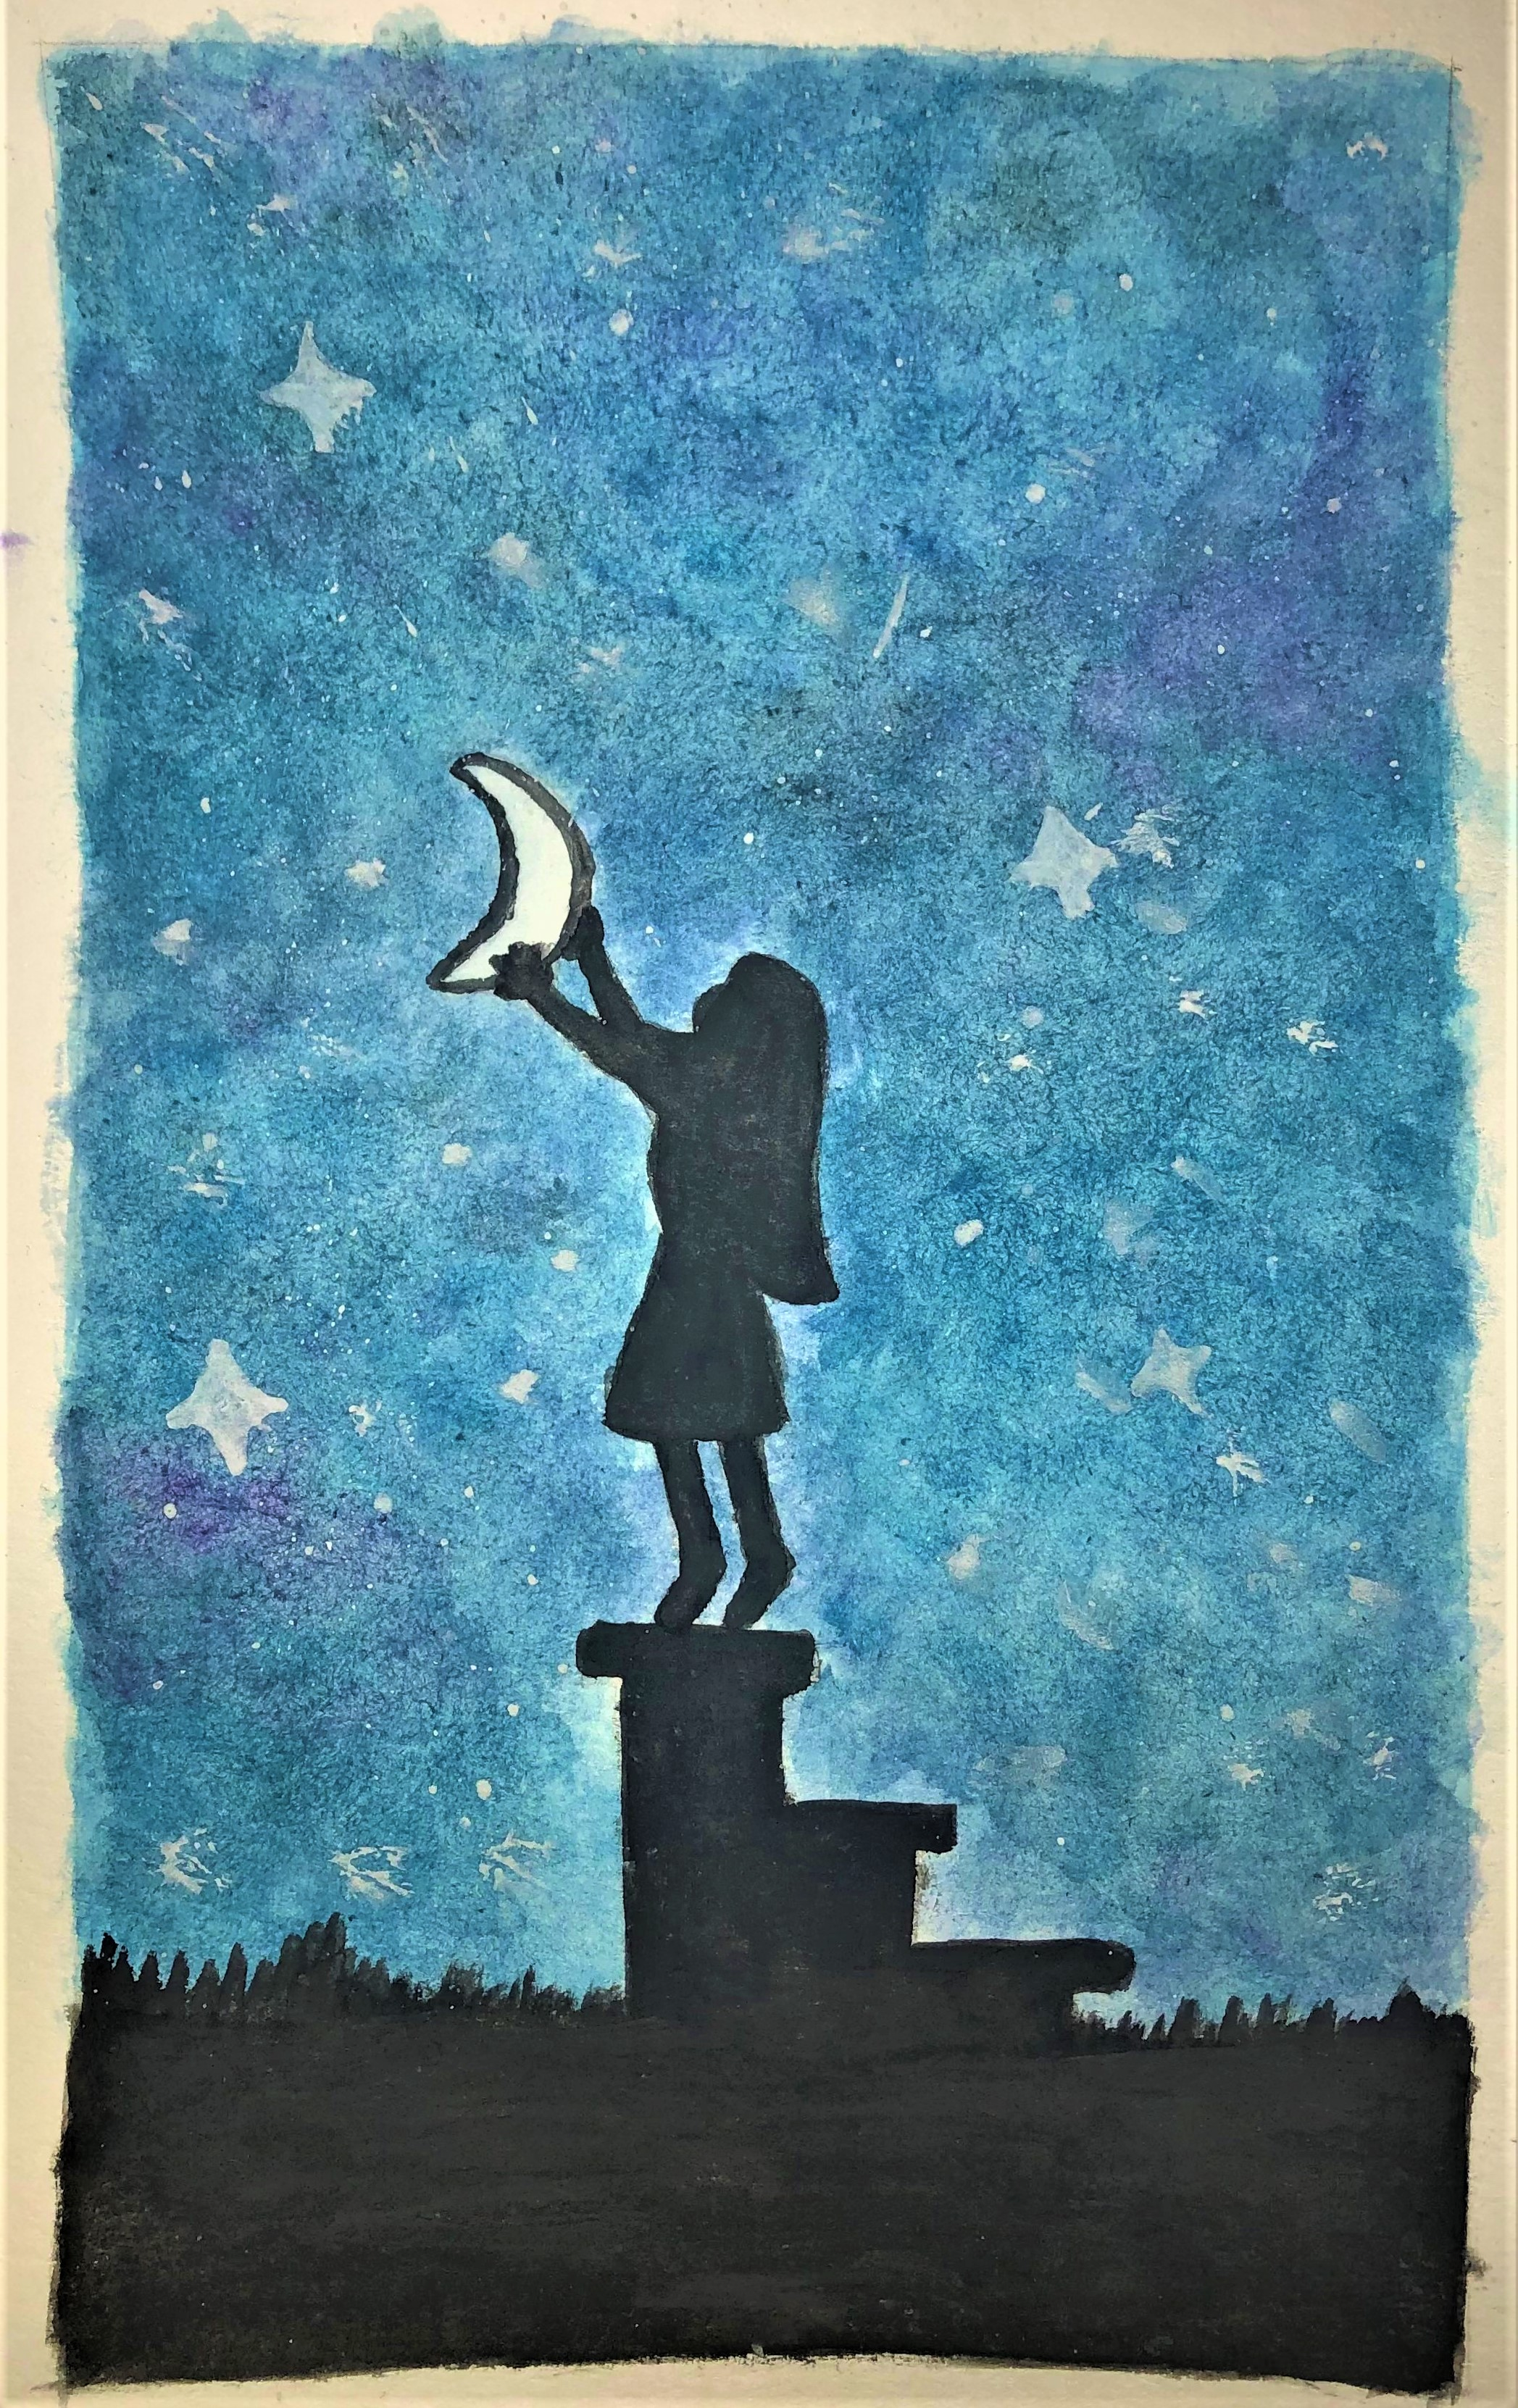 A watercolour painting of a young girl standing on top of a short set of steps to grasp a crescent moon, in black silhouette against a starry night sky